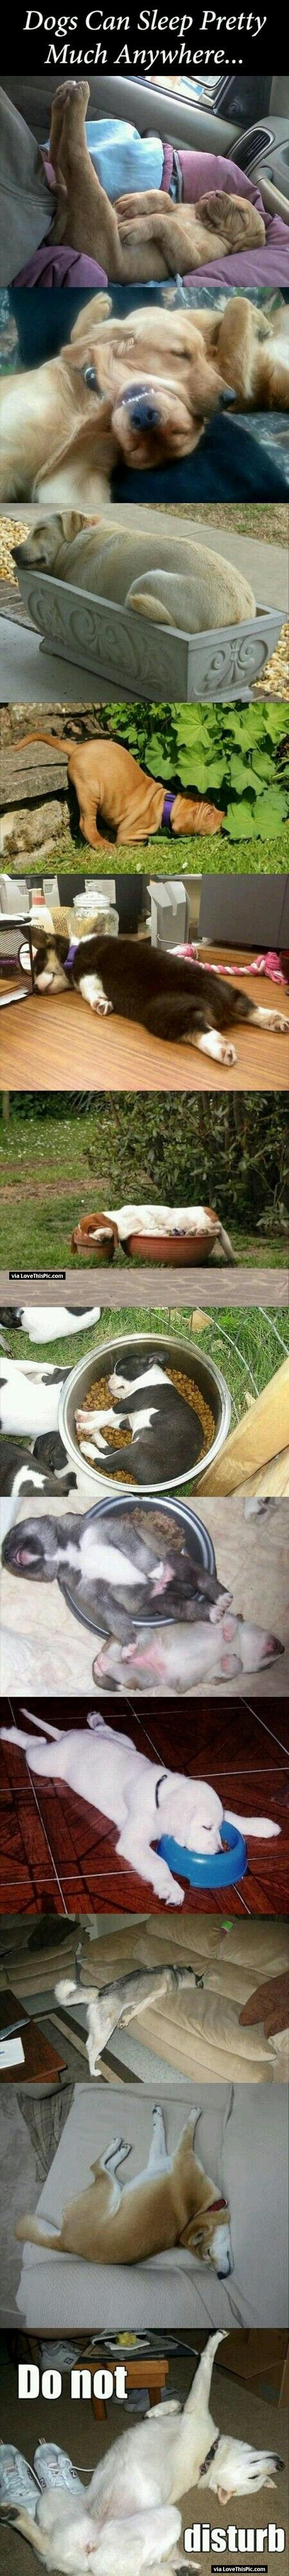 Digs Can Sleep Anywhere cute animals dogs adorable dog puppy animal pets funny animals funny pets funny dogs funny dog images